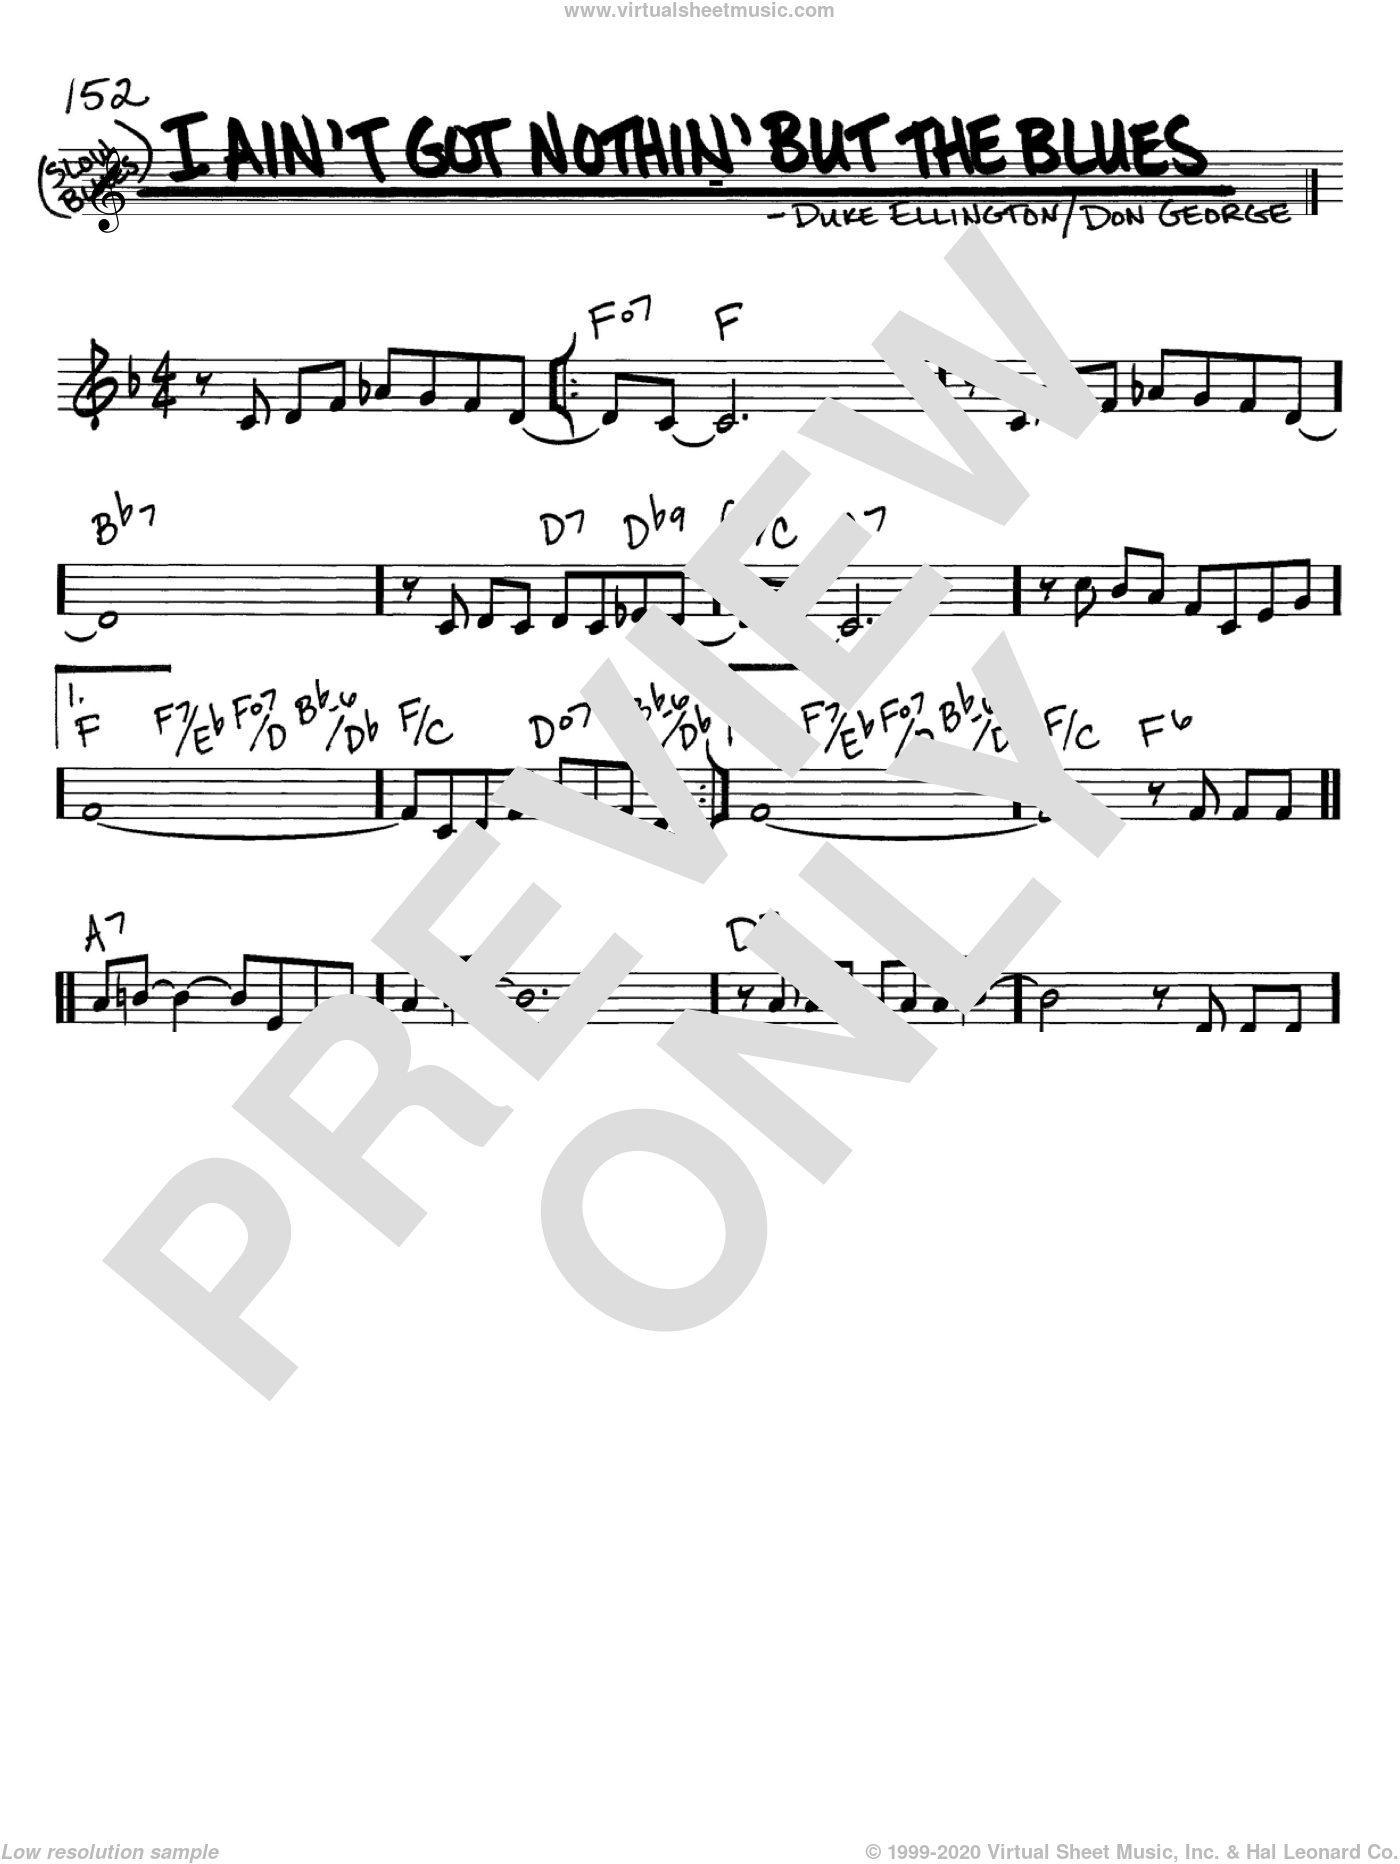 I Ain't Got Nothin' But The Blues sheet music for voice and other instruments (C) by Duke Ellington and Don George. Score Image Preview.